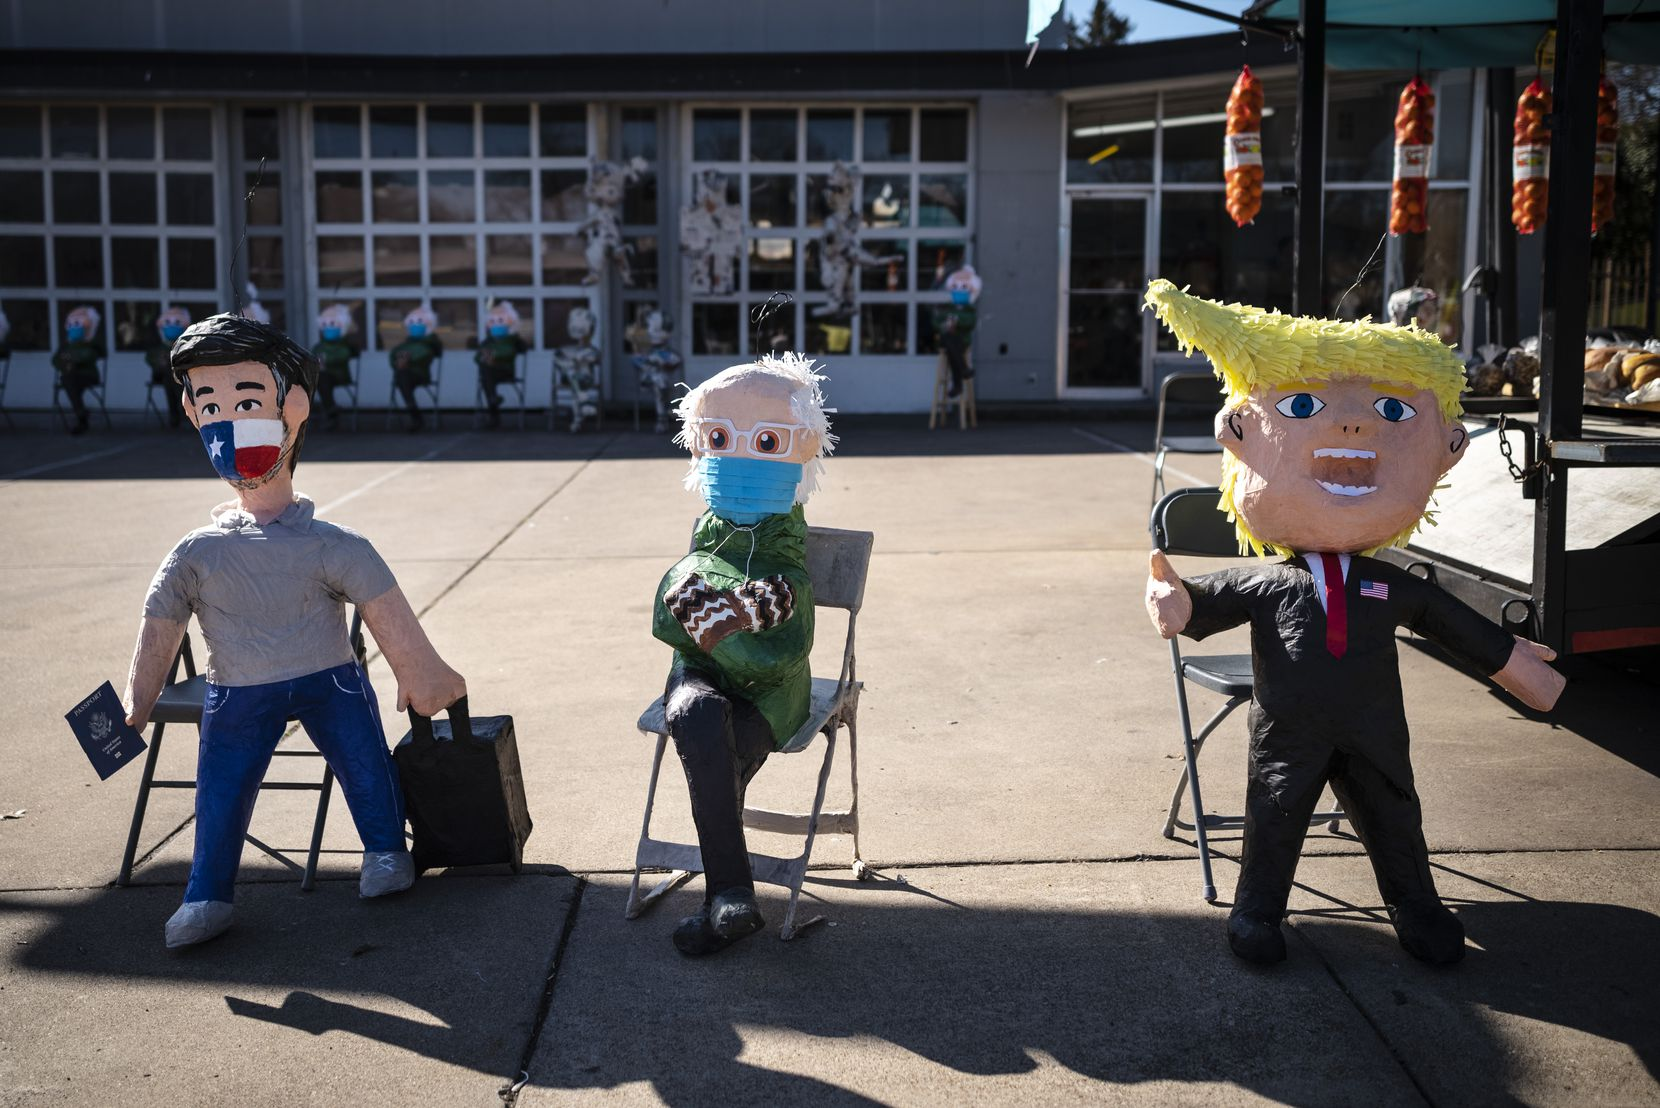 Piñatas of Ted Cruz, Bernie Sanders and former President Donald Trump are being made and sold at ABC Party in Dallas, on Tuesday, Feb. 23, 2021.